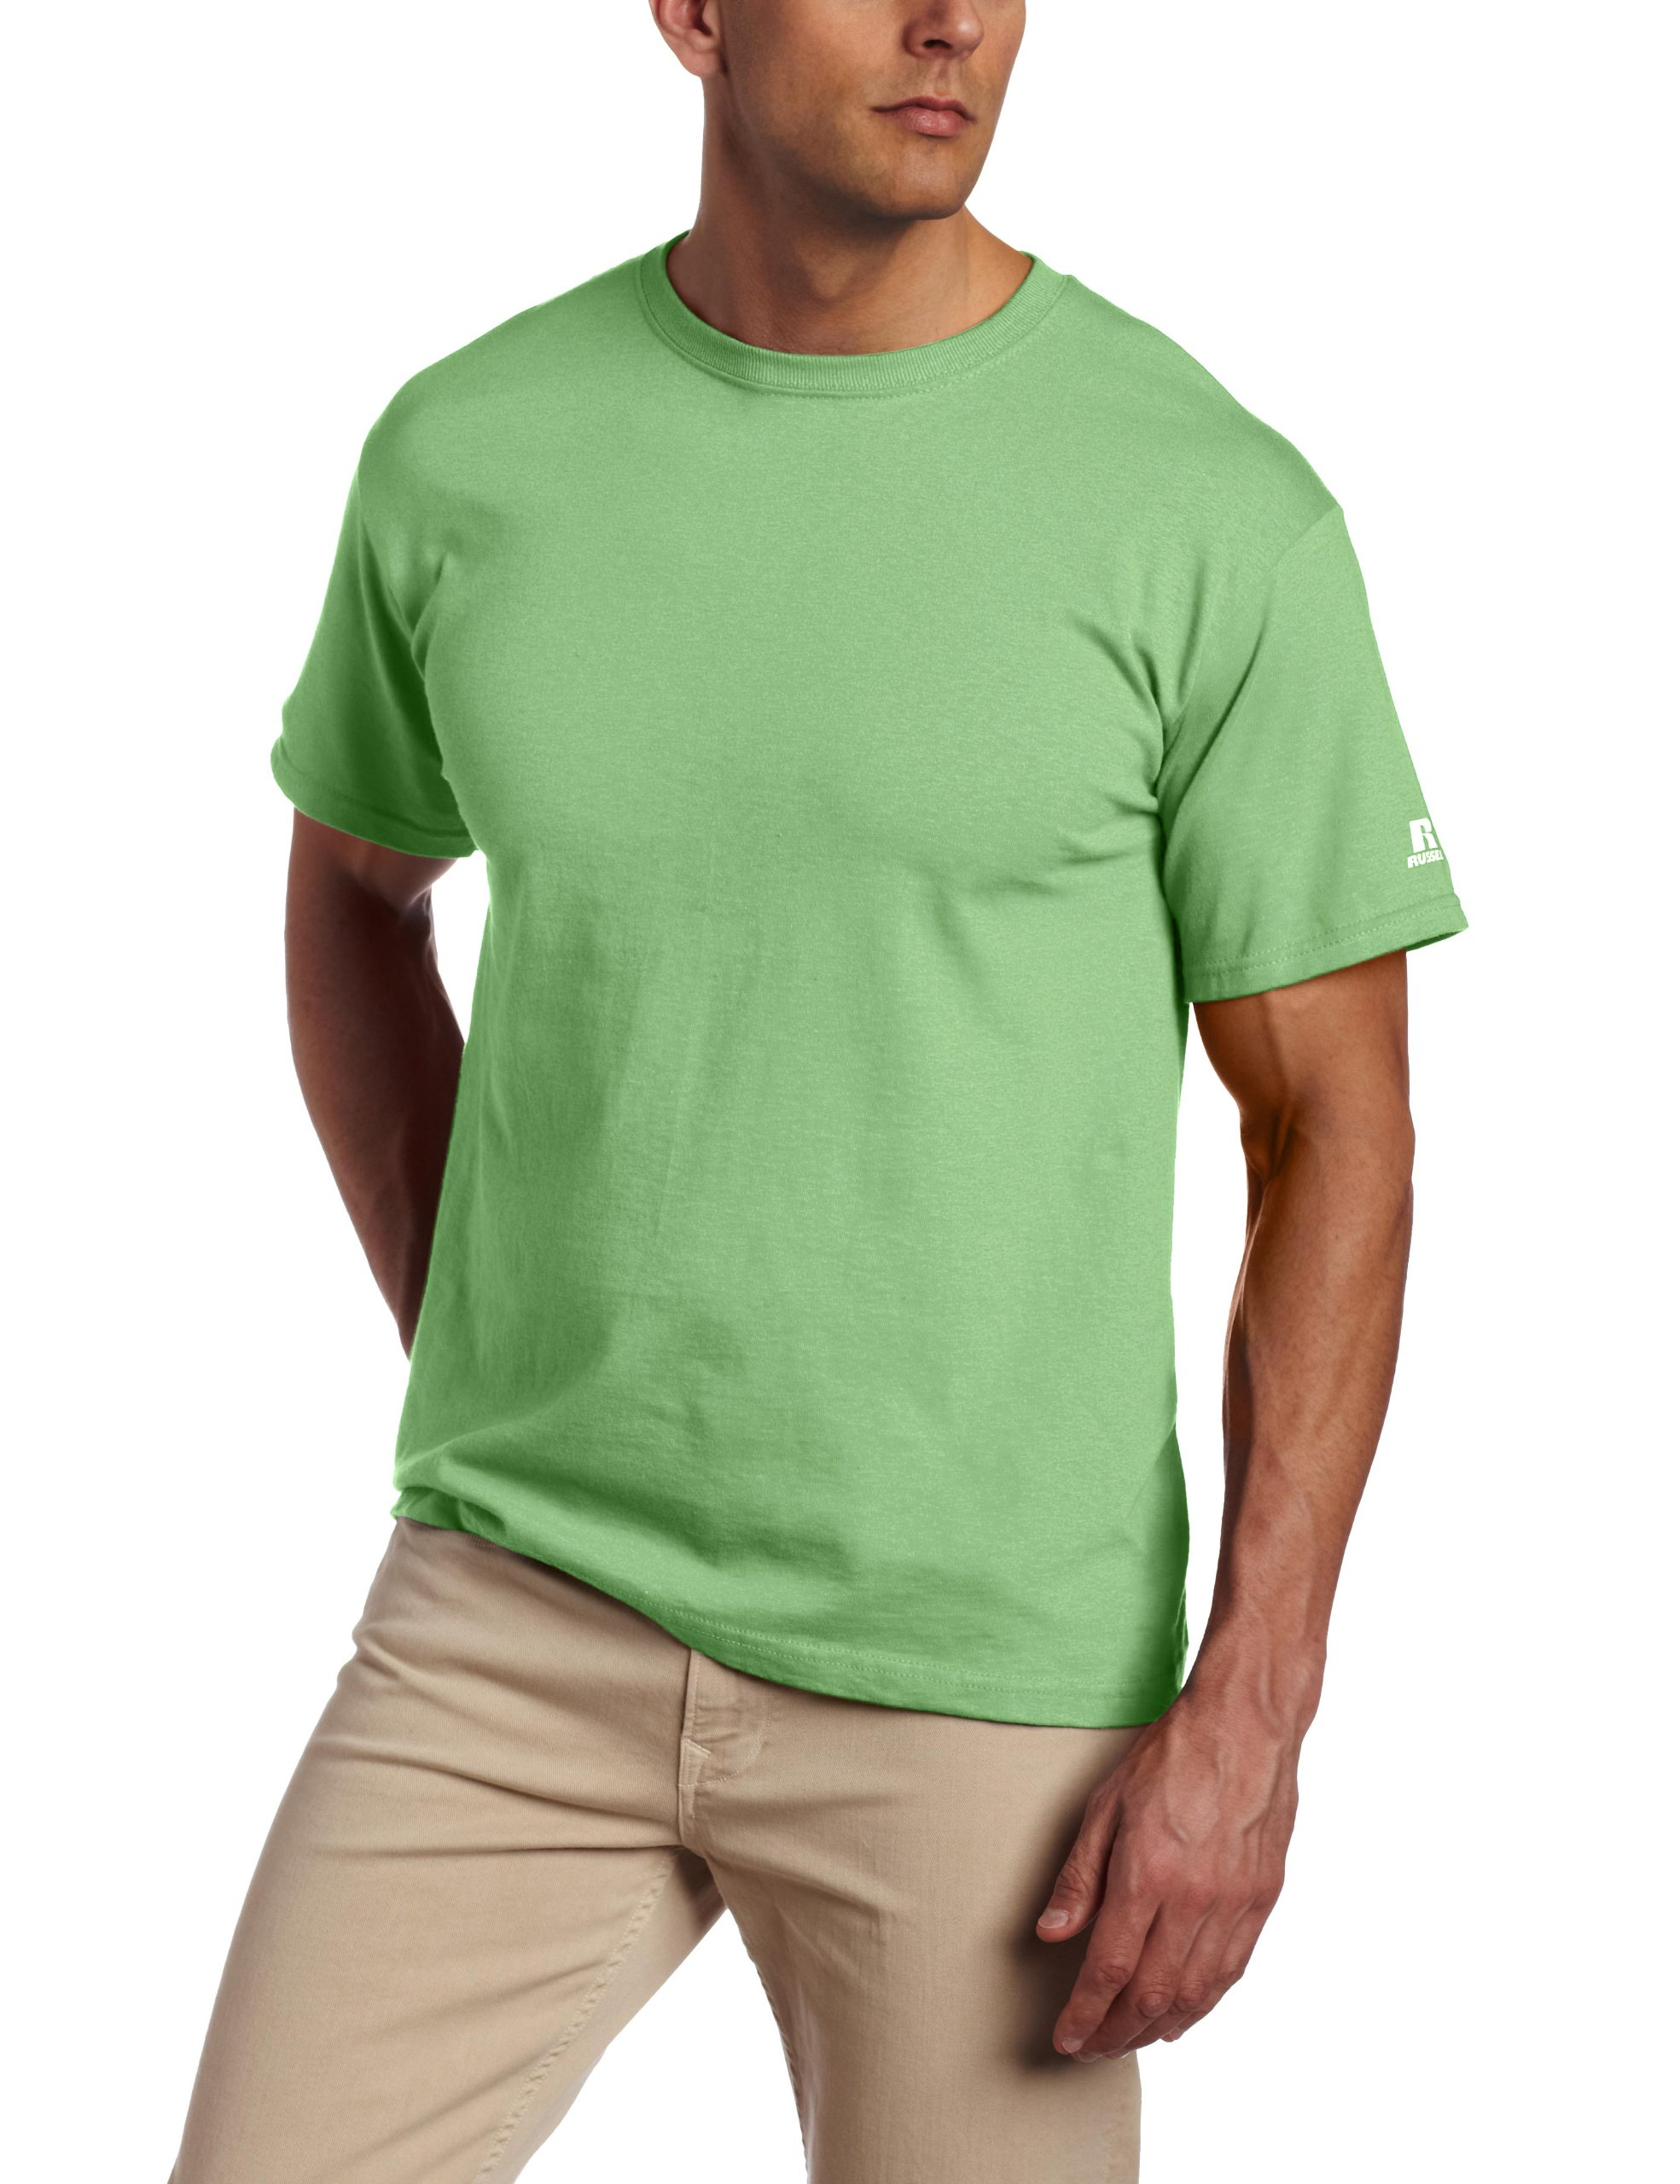 Russell Athletic Men's Basic Cotton Tee Small Shockwave Green